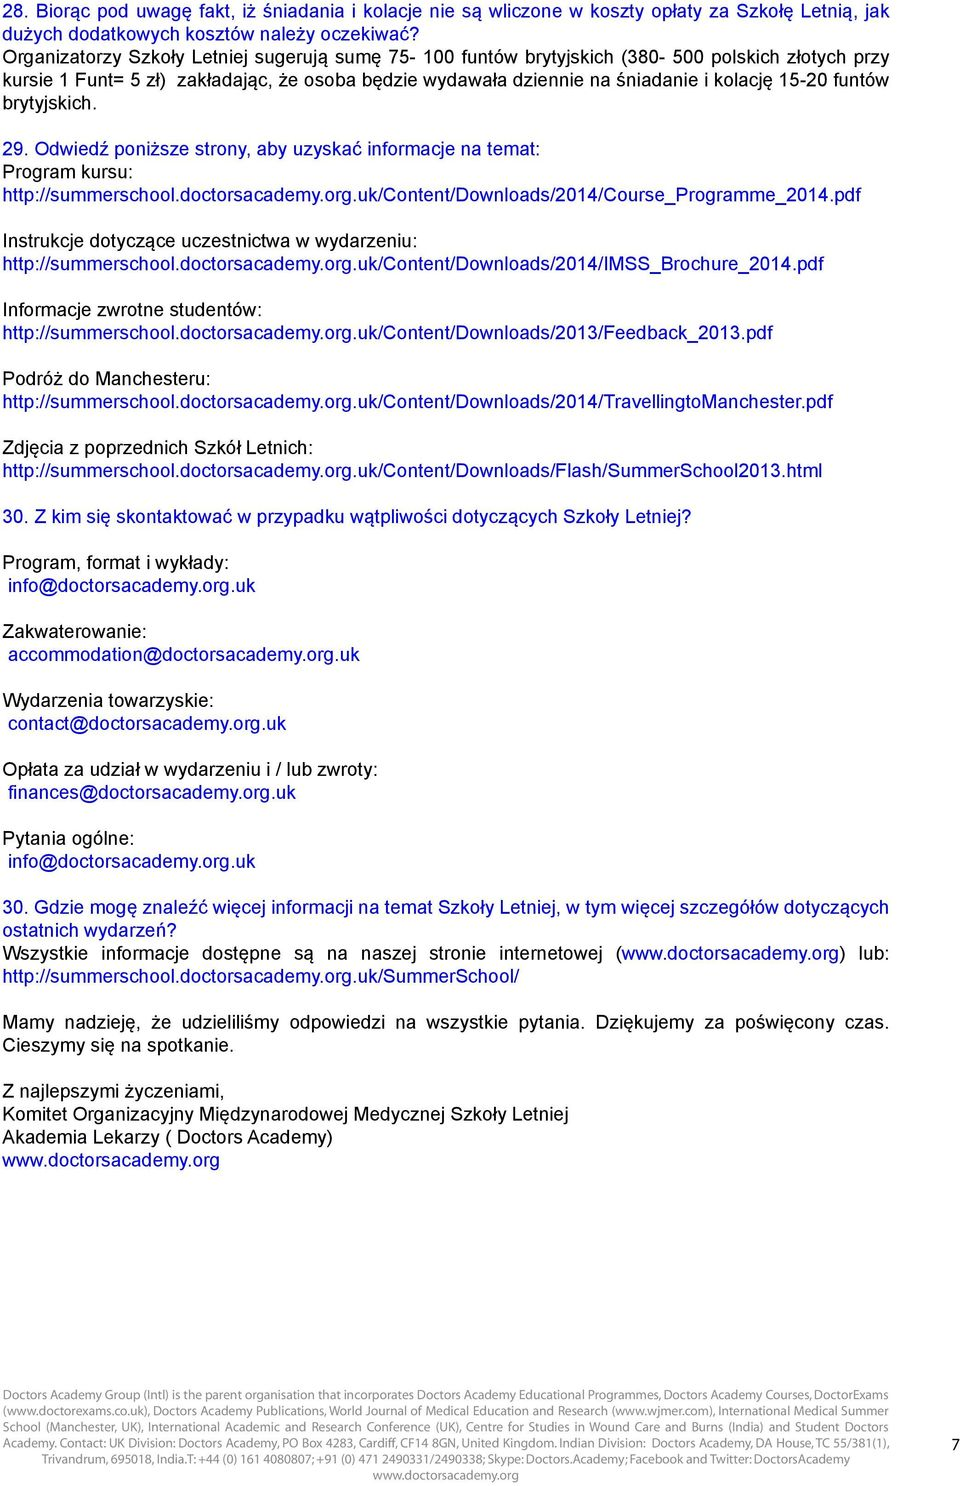 funtów brytyjskich. 29. Odwiedź poniższe strony, aby uzyskać informacje na temat: Program kursu: http://summerschool.doctorsacademy.org.uk/content/downloads/2014/course_programme_2014.